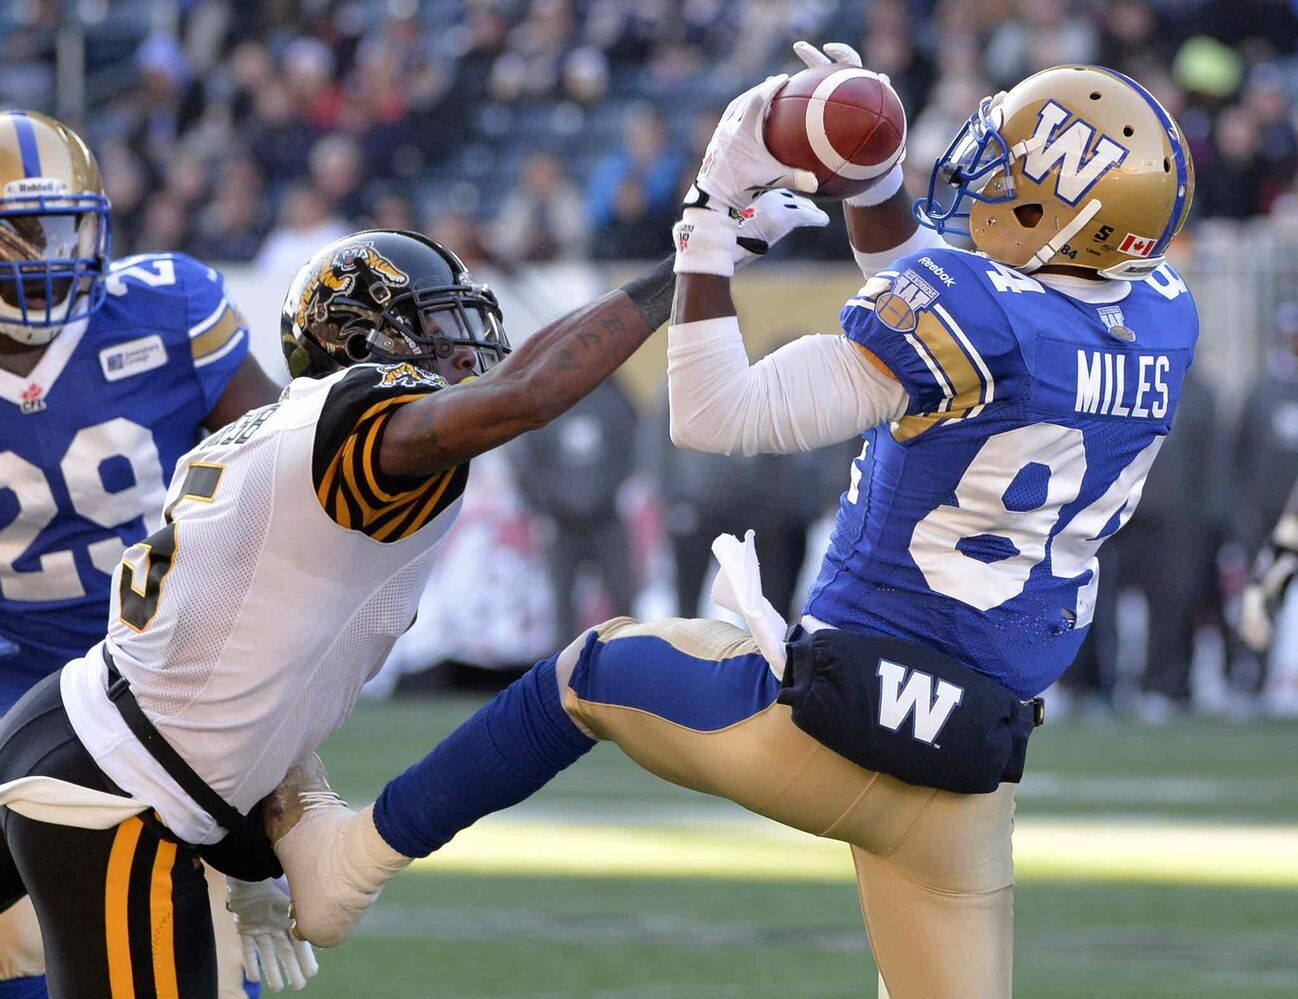 Winnipeg Blue Bombers' Wallace Miles (84) hauls a pass in as Dee Webb of the Hamilton Tiger-Cats reaches for the ball during the second half. (Fred Greenslade / The Canadian Press)